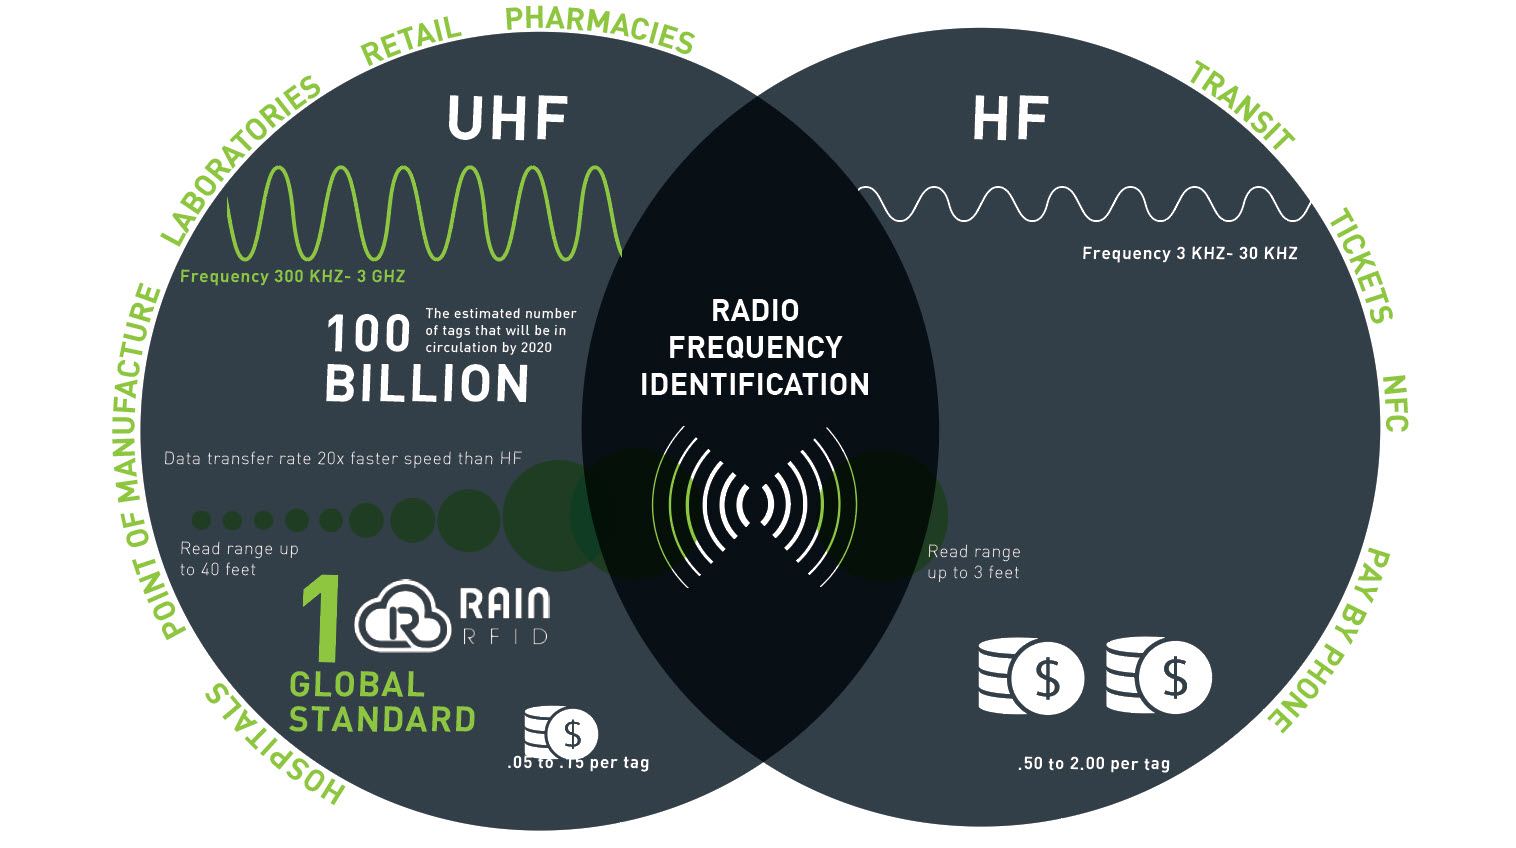 Terso Solutions specializes in RAIN RFID technology. This is Ultra high frequency radio frequency identification. The difference between high frequency and ultra high frequency RFID